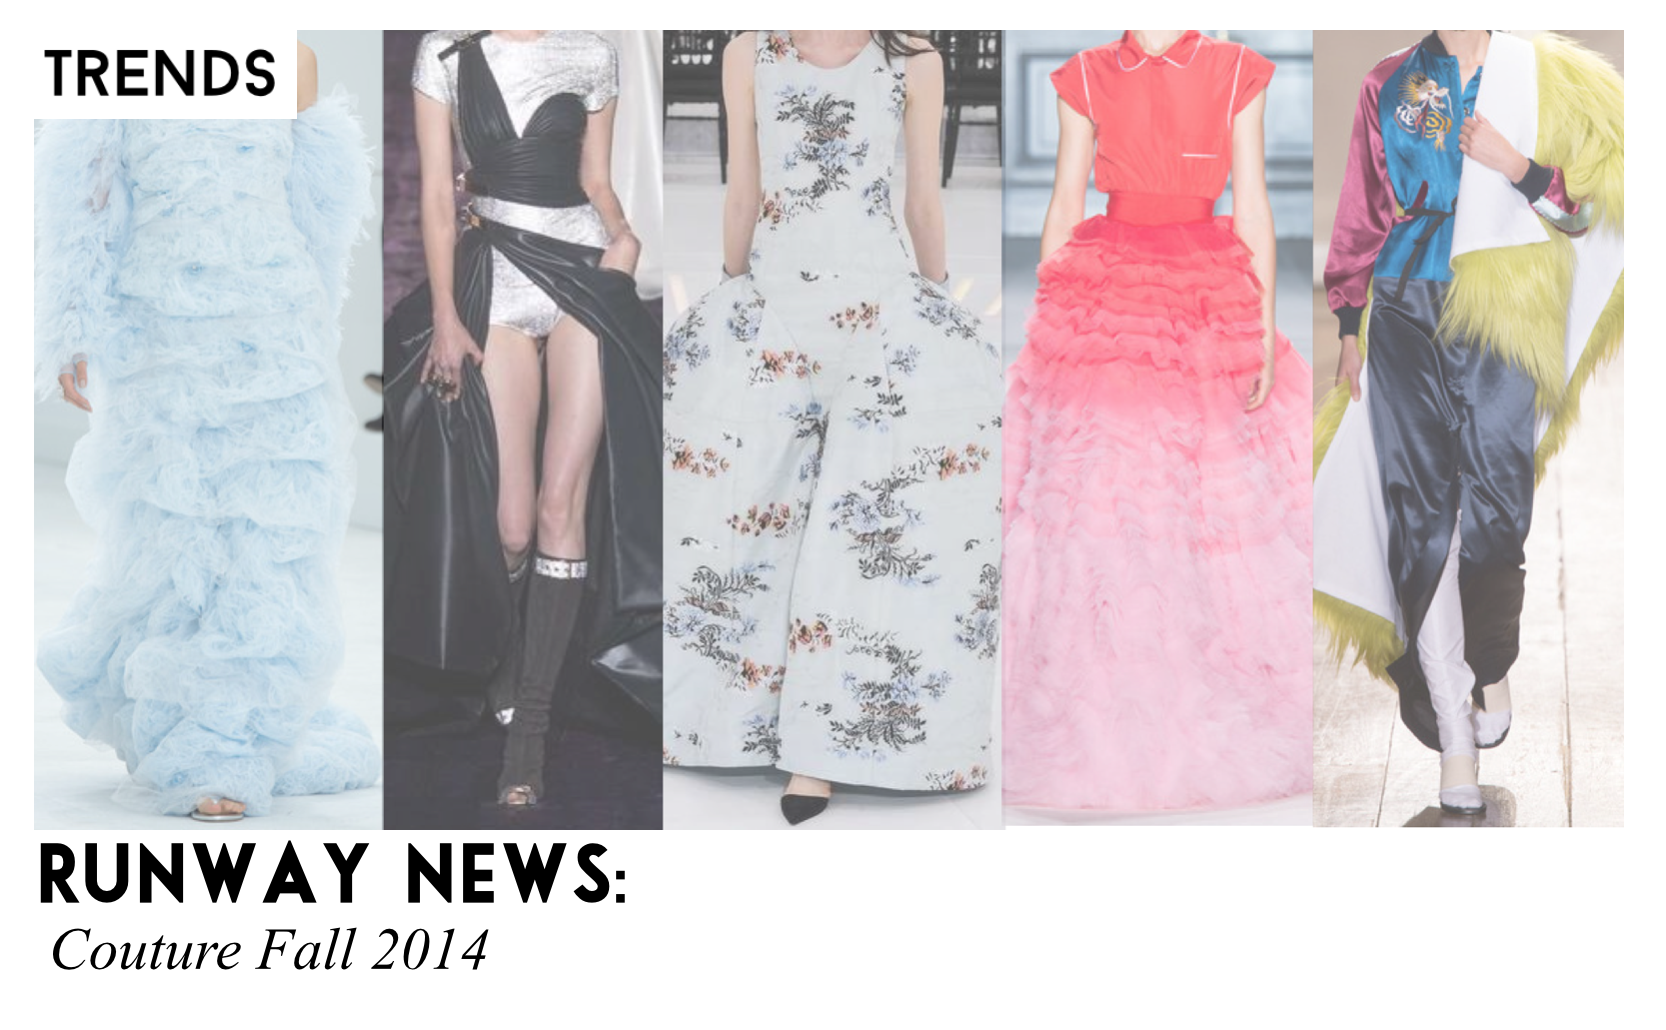 Runway News Couture Fall 2014